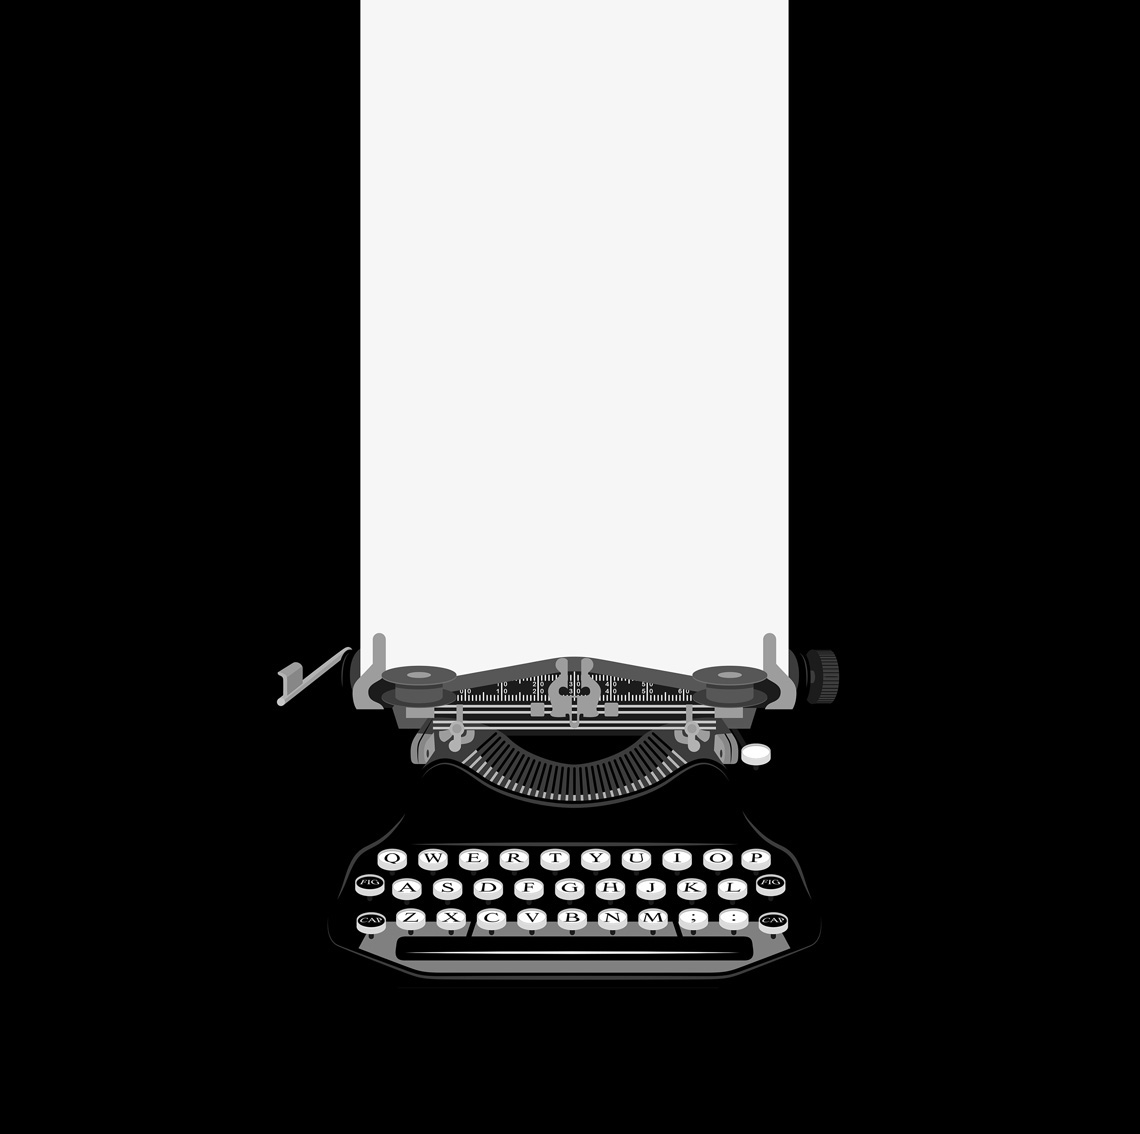 17_Typewriter_black.jpg